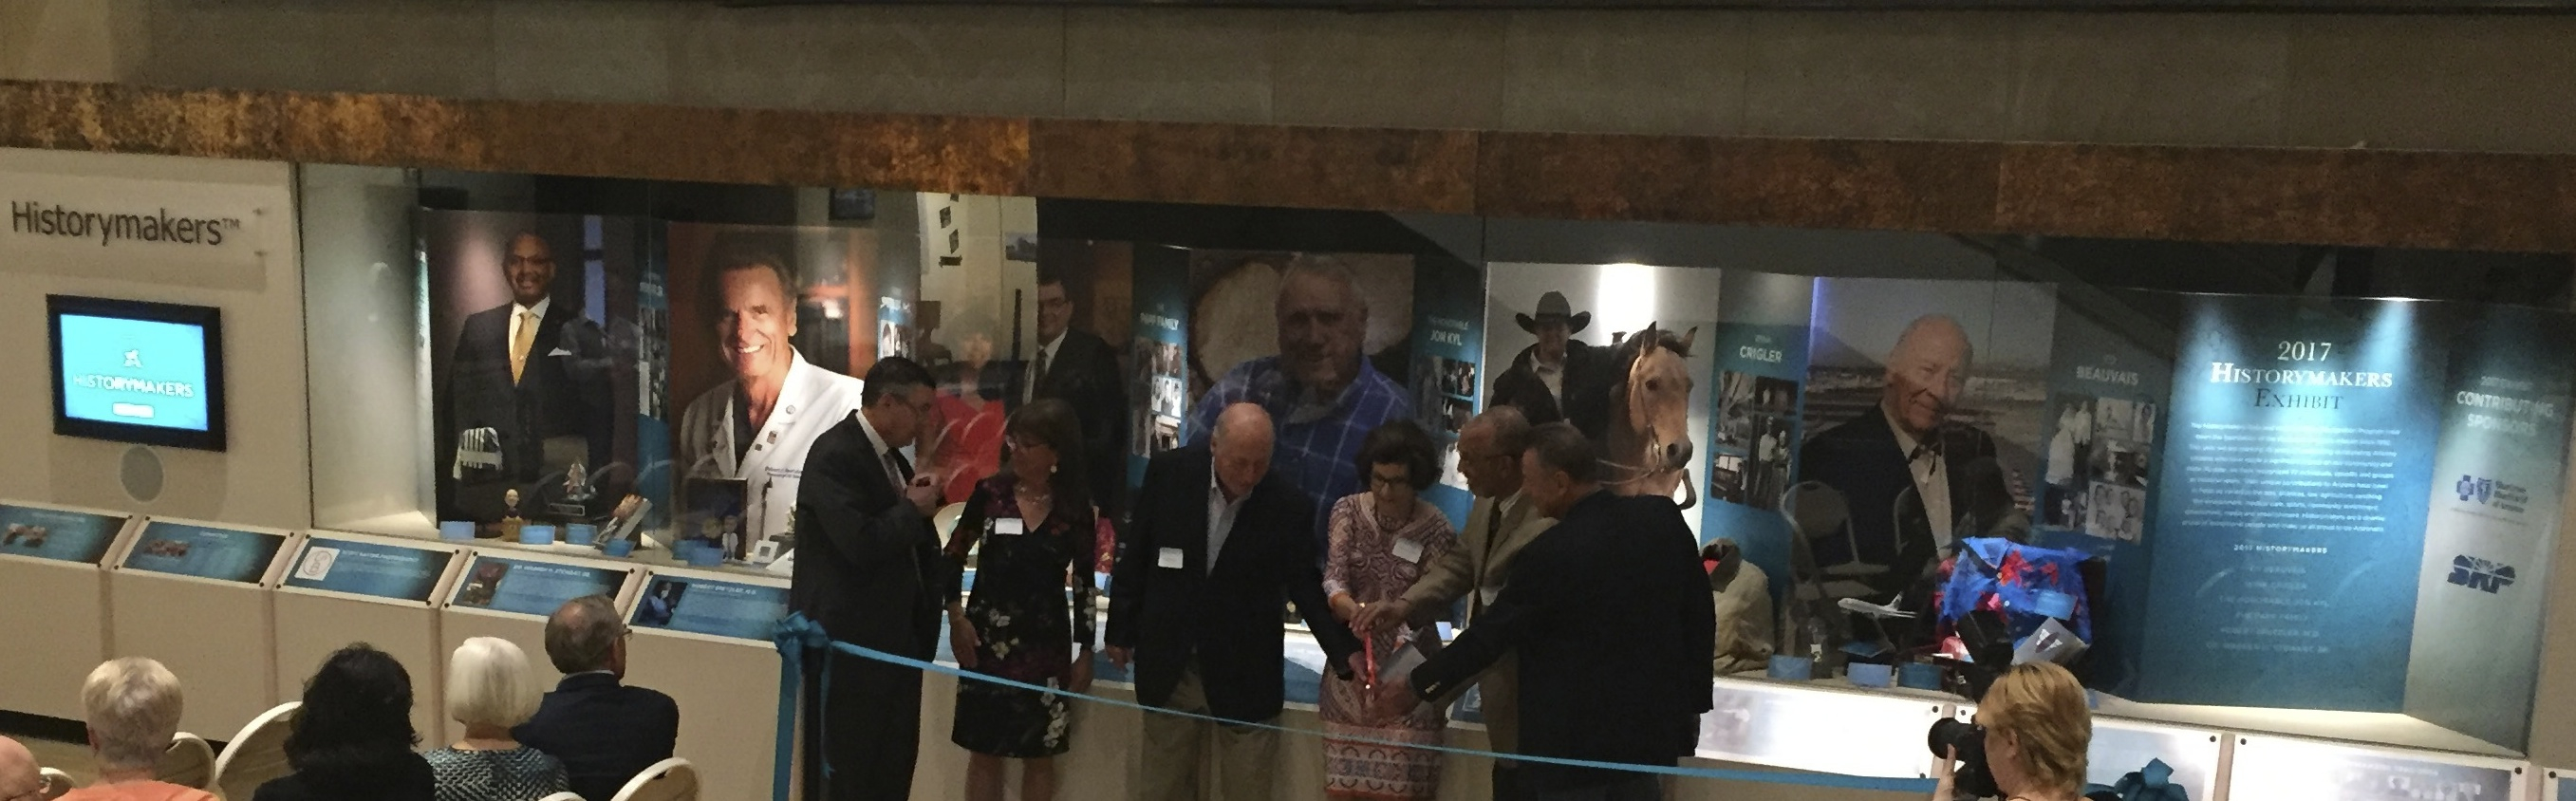 Lobby Historymakers 2017 Exhibit ribbon cutting